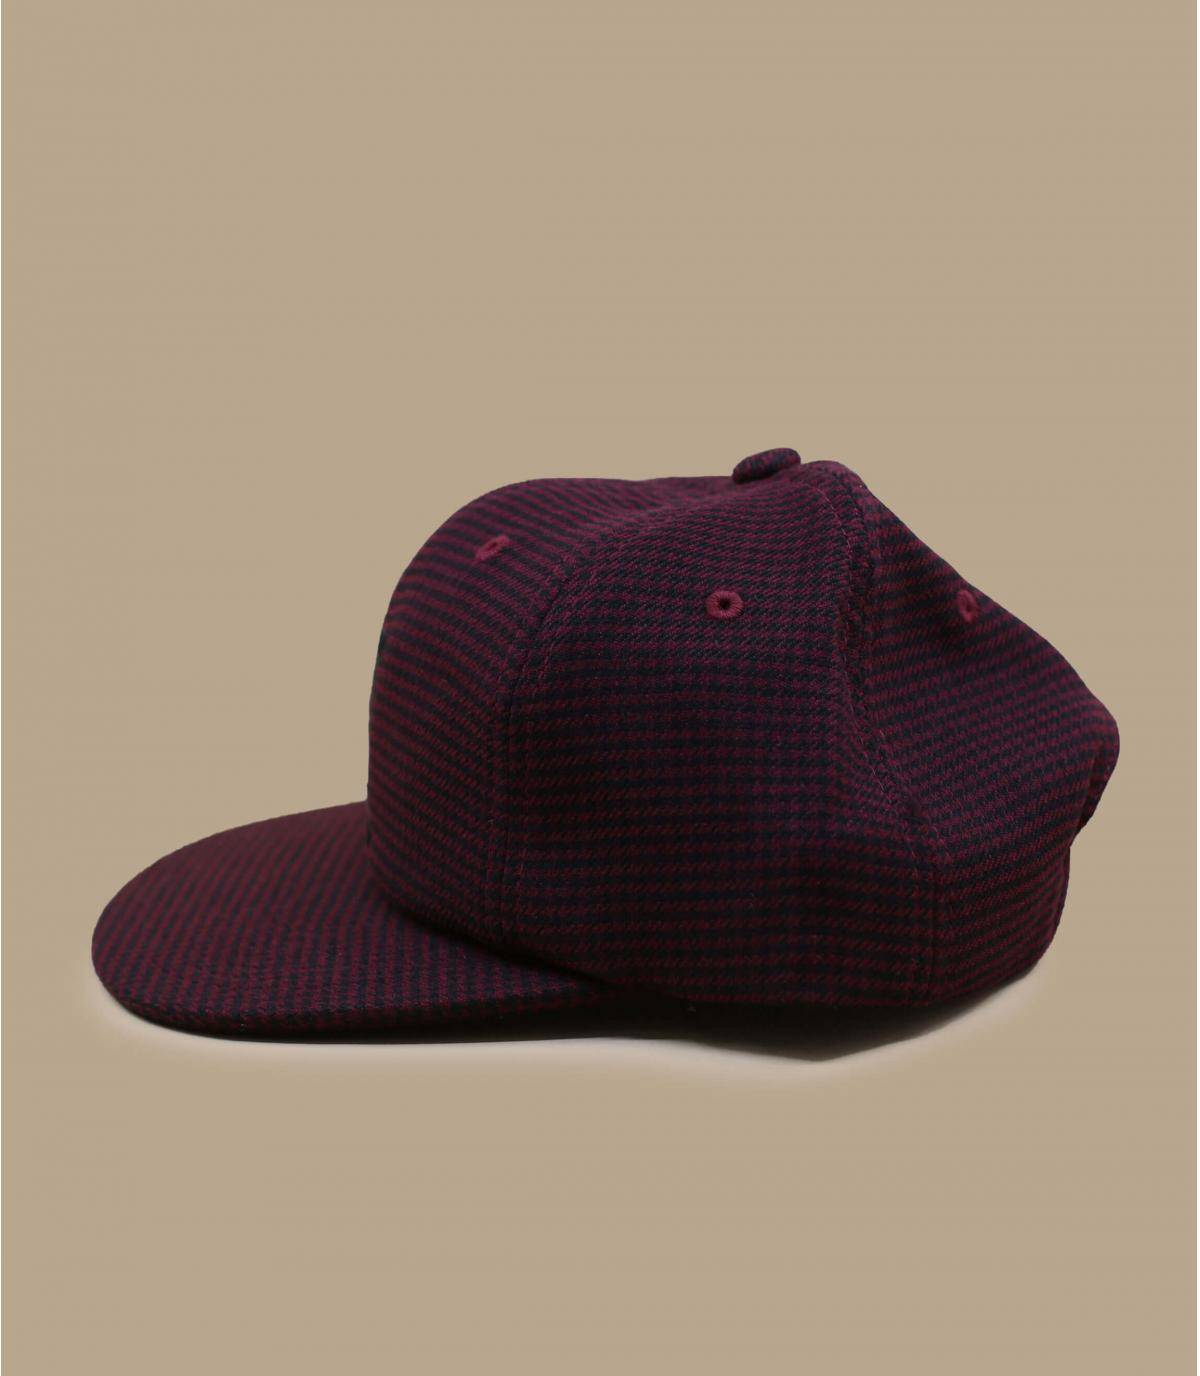 Détails Classic H Houndstooth bloodstone - image 3